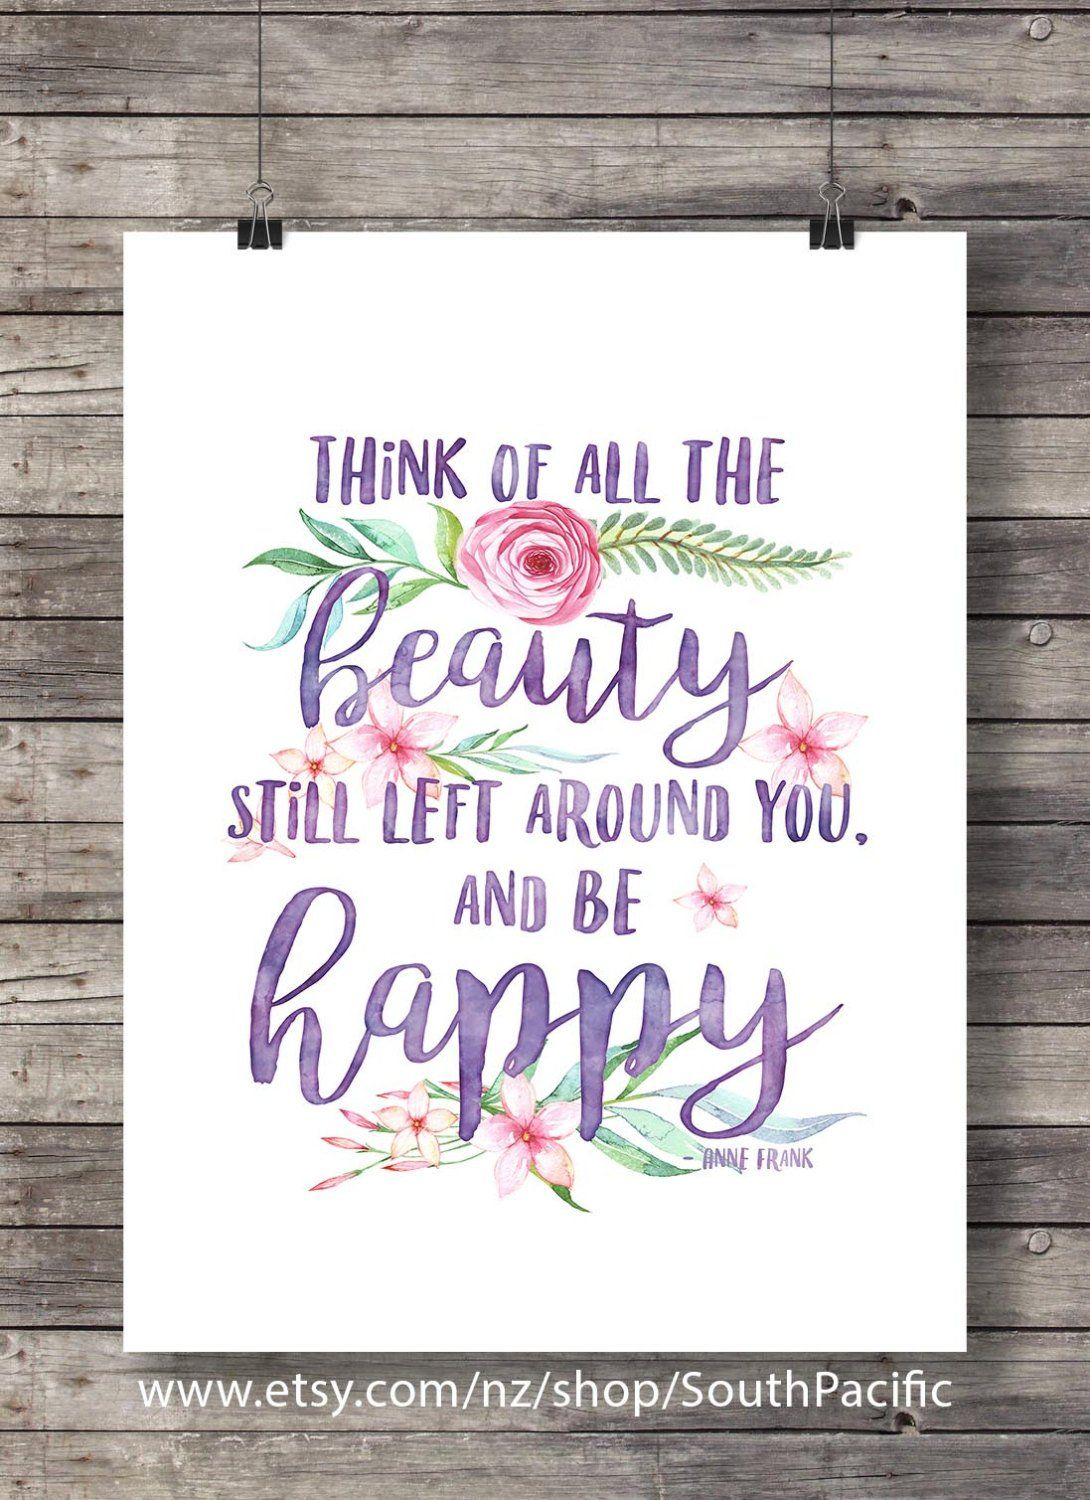 Anne Frank Watercolor Quote Think Of All The Beauty Still